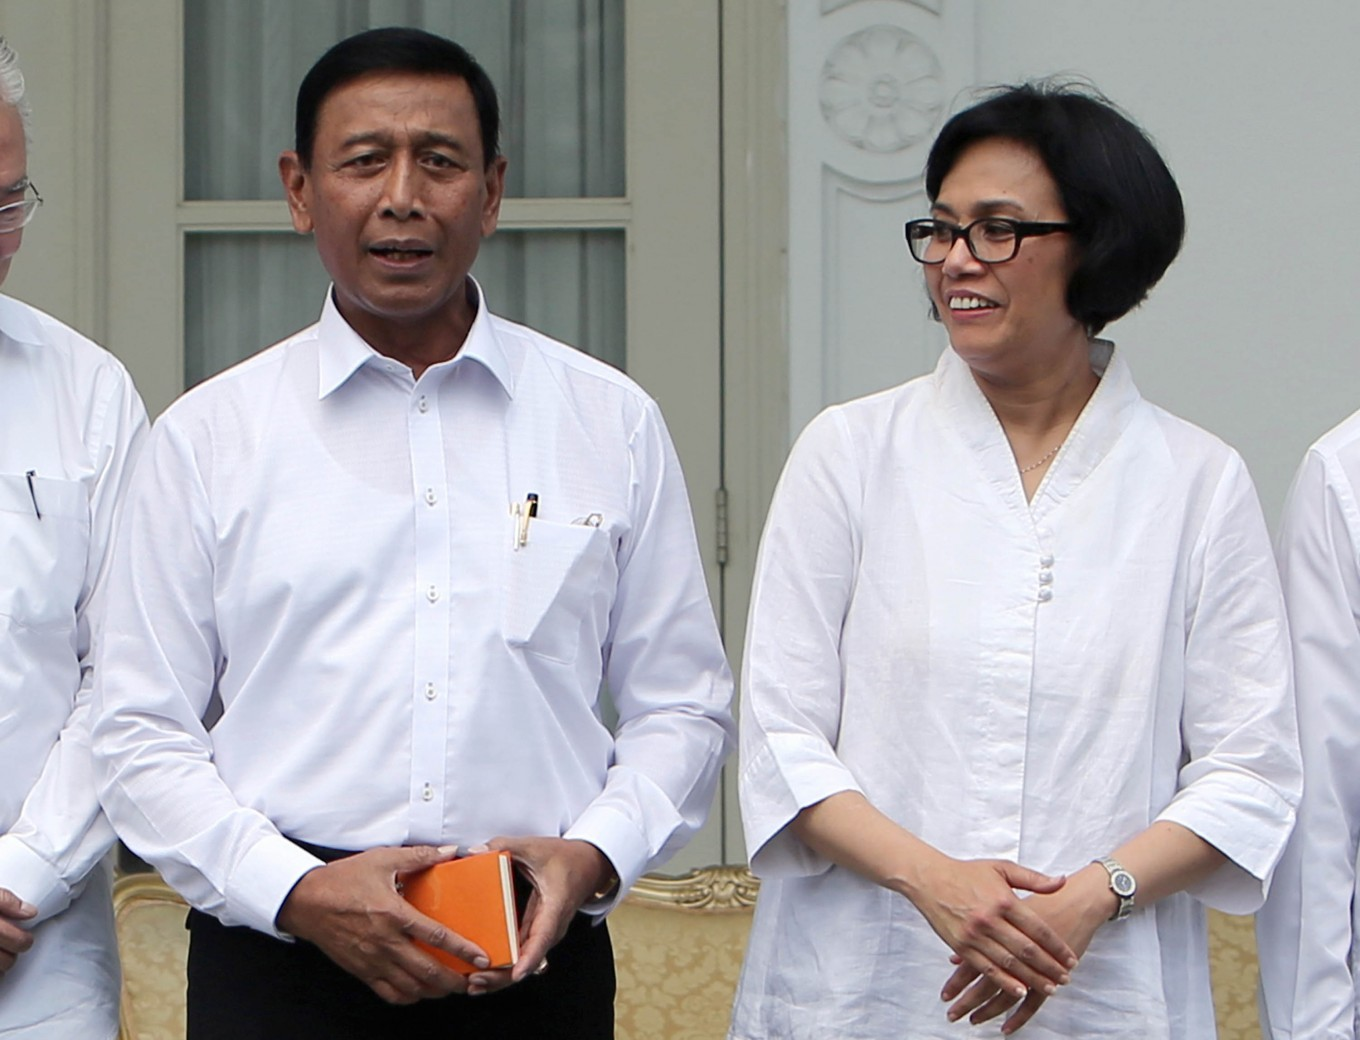 Wiranto replaces Luhut as security minister